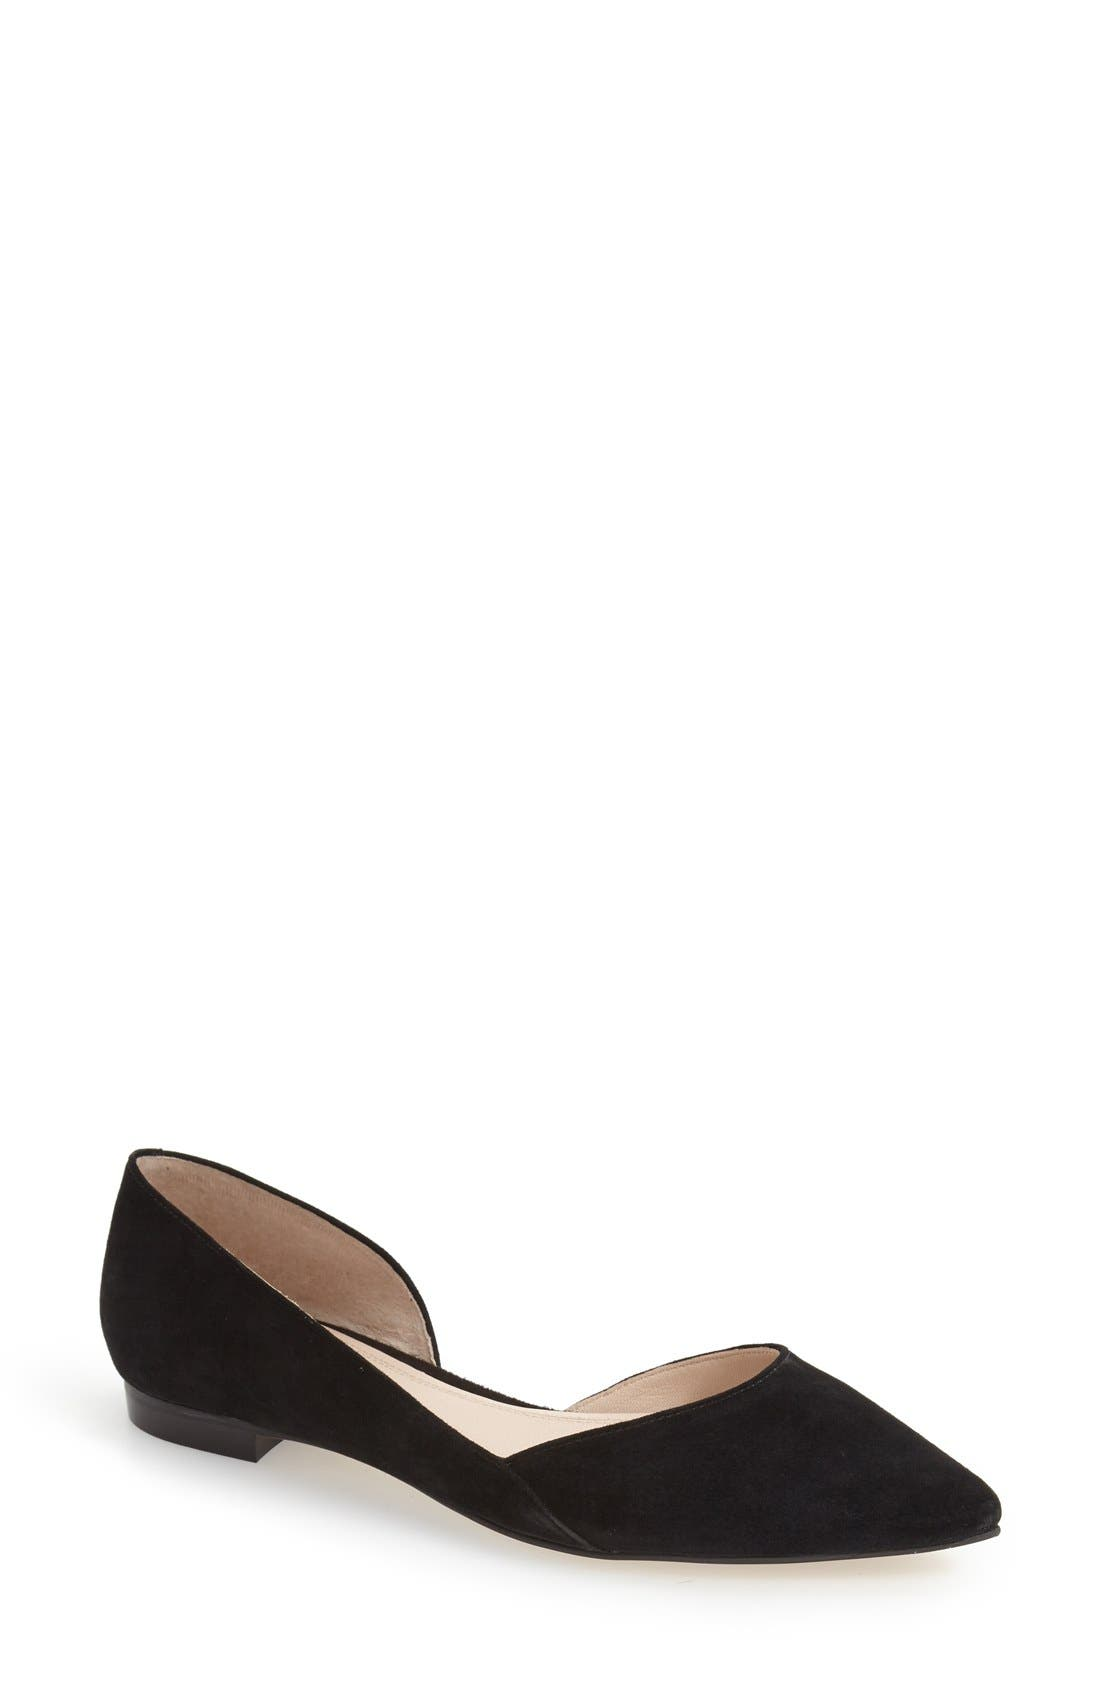 0ae30f61a9 Marc Fisher LTD All Women | Nordstrom